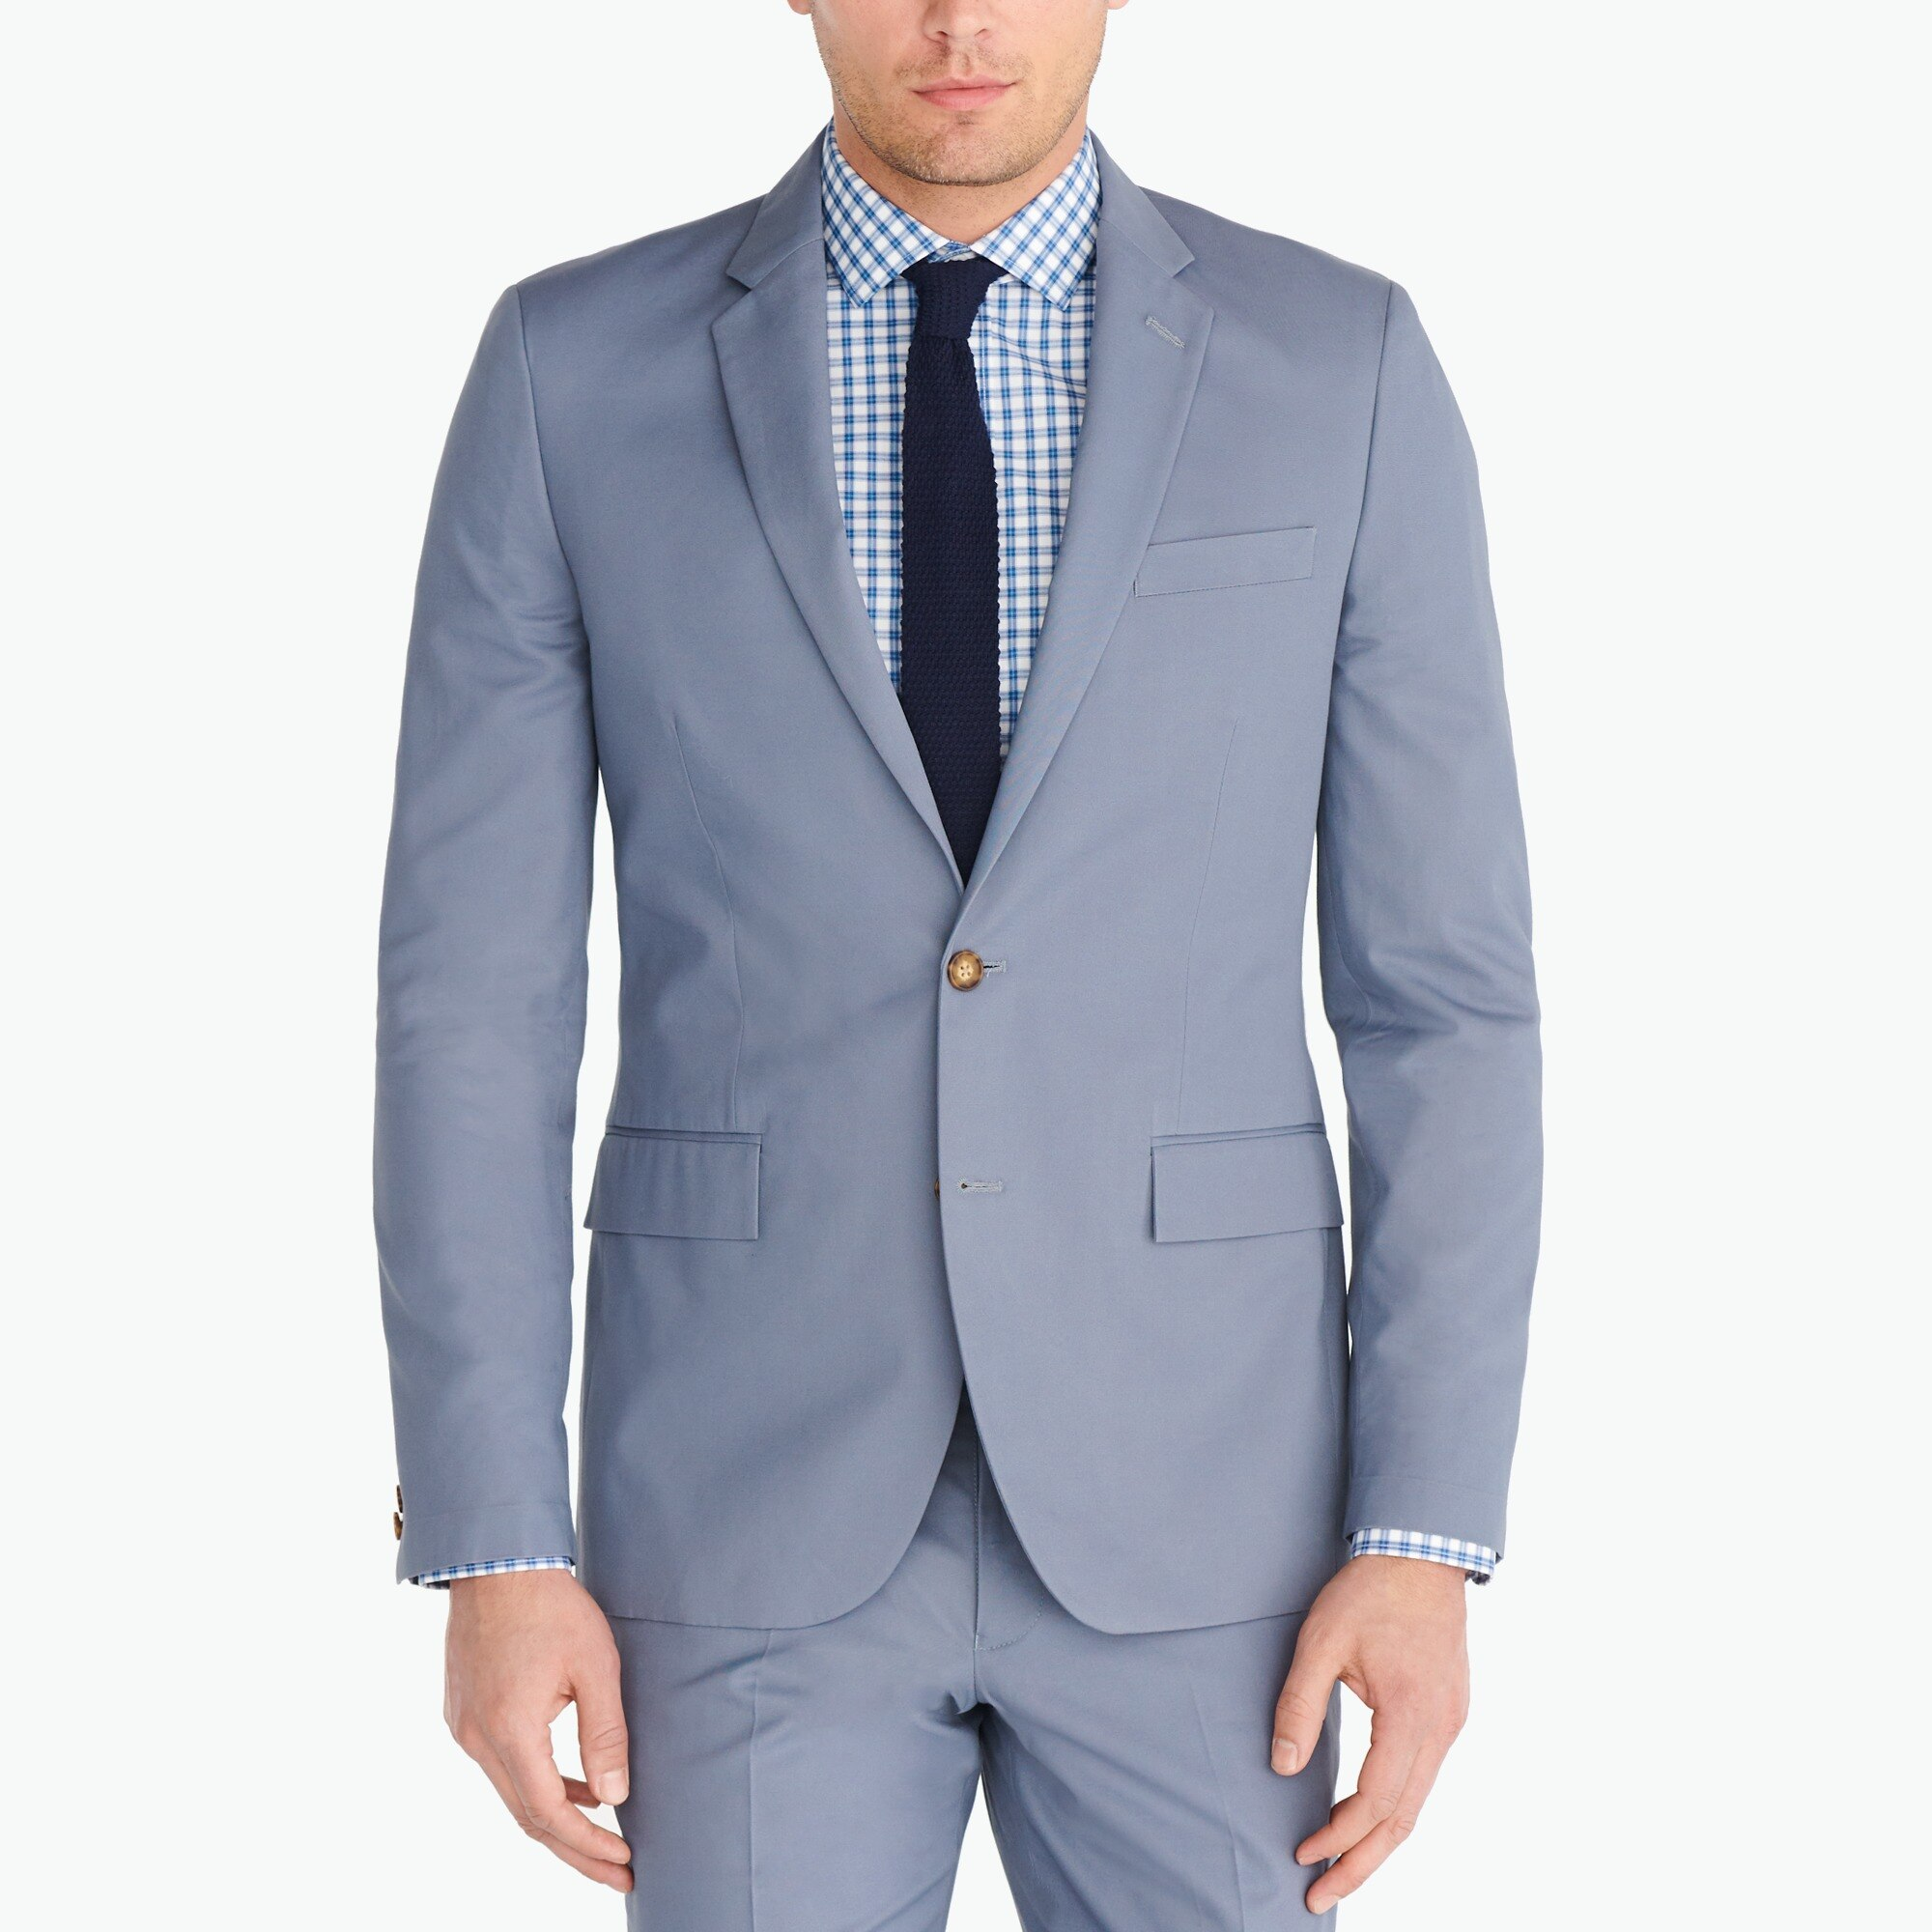 Image 1 for Slim-fit Thompson suit jacket in chino